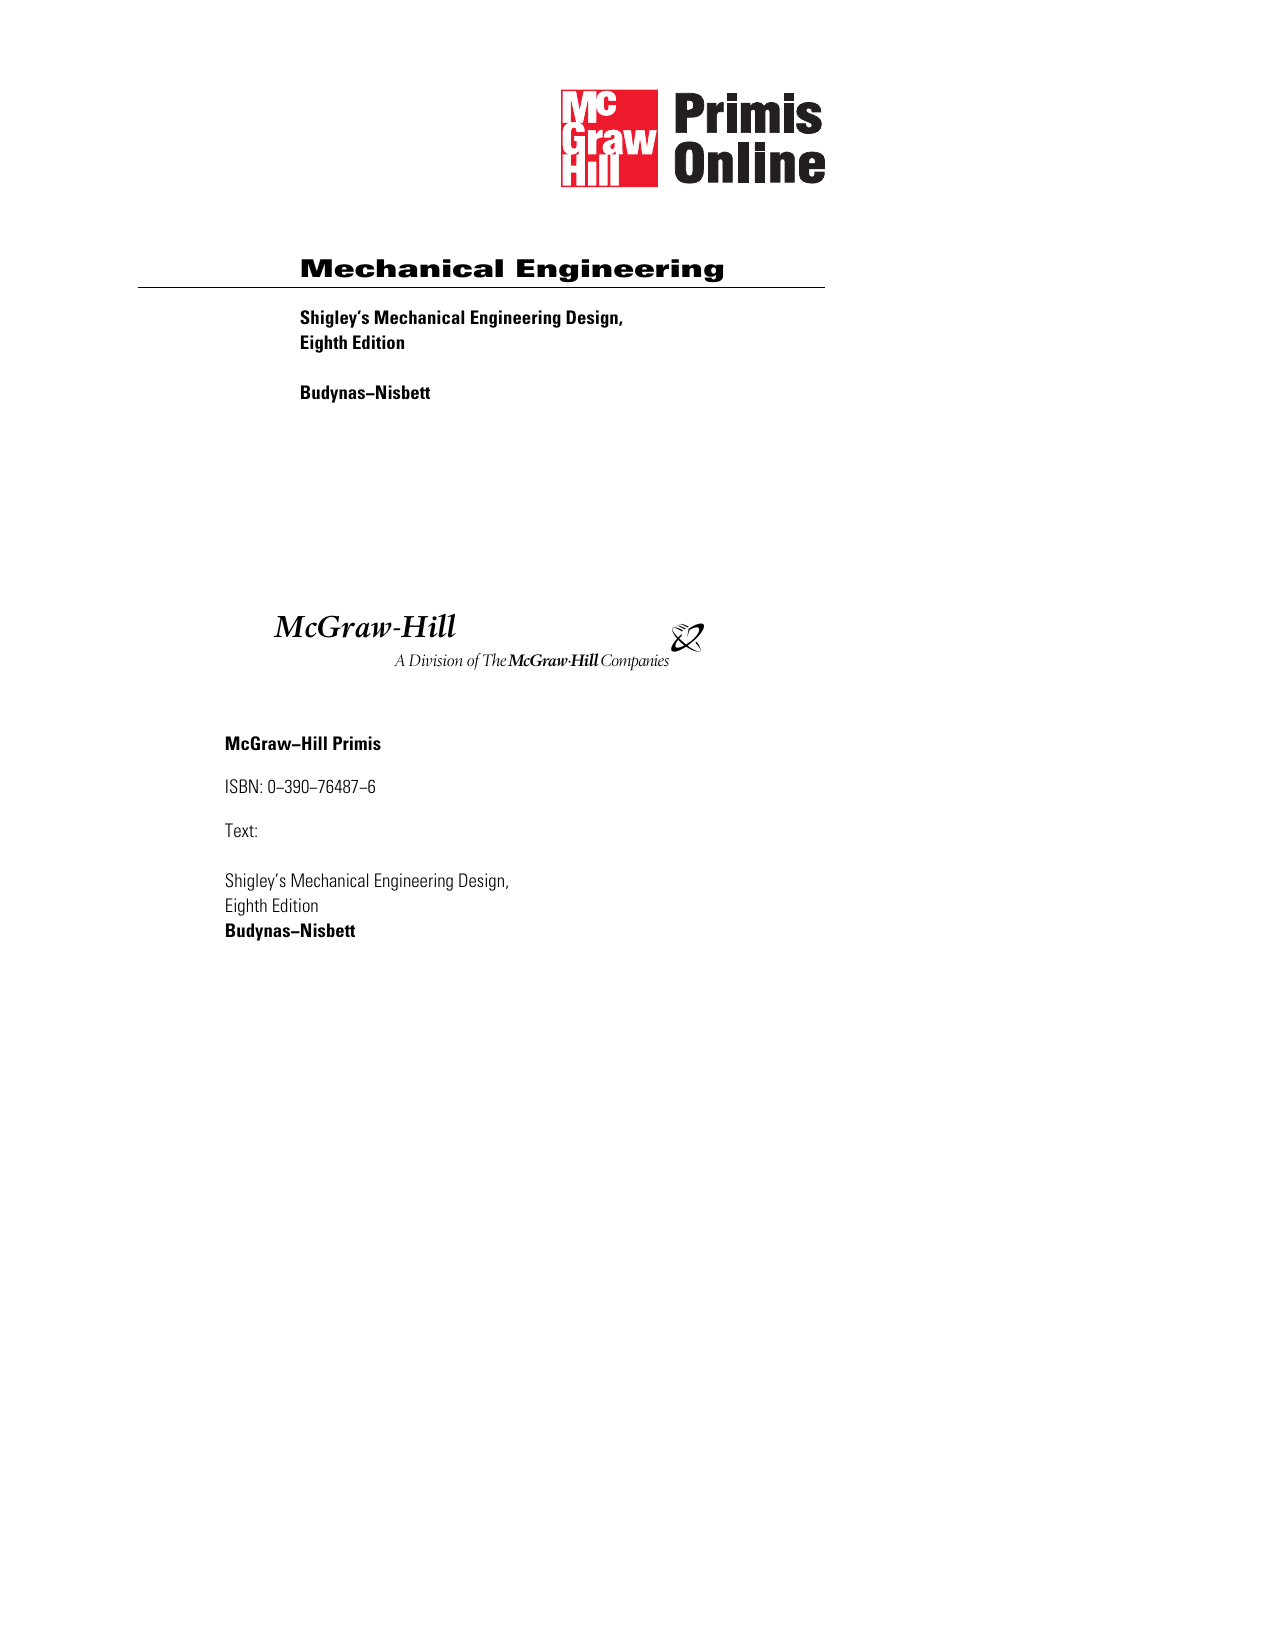 Mechanical Engineering Design 8th Ed